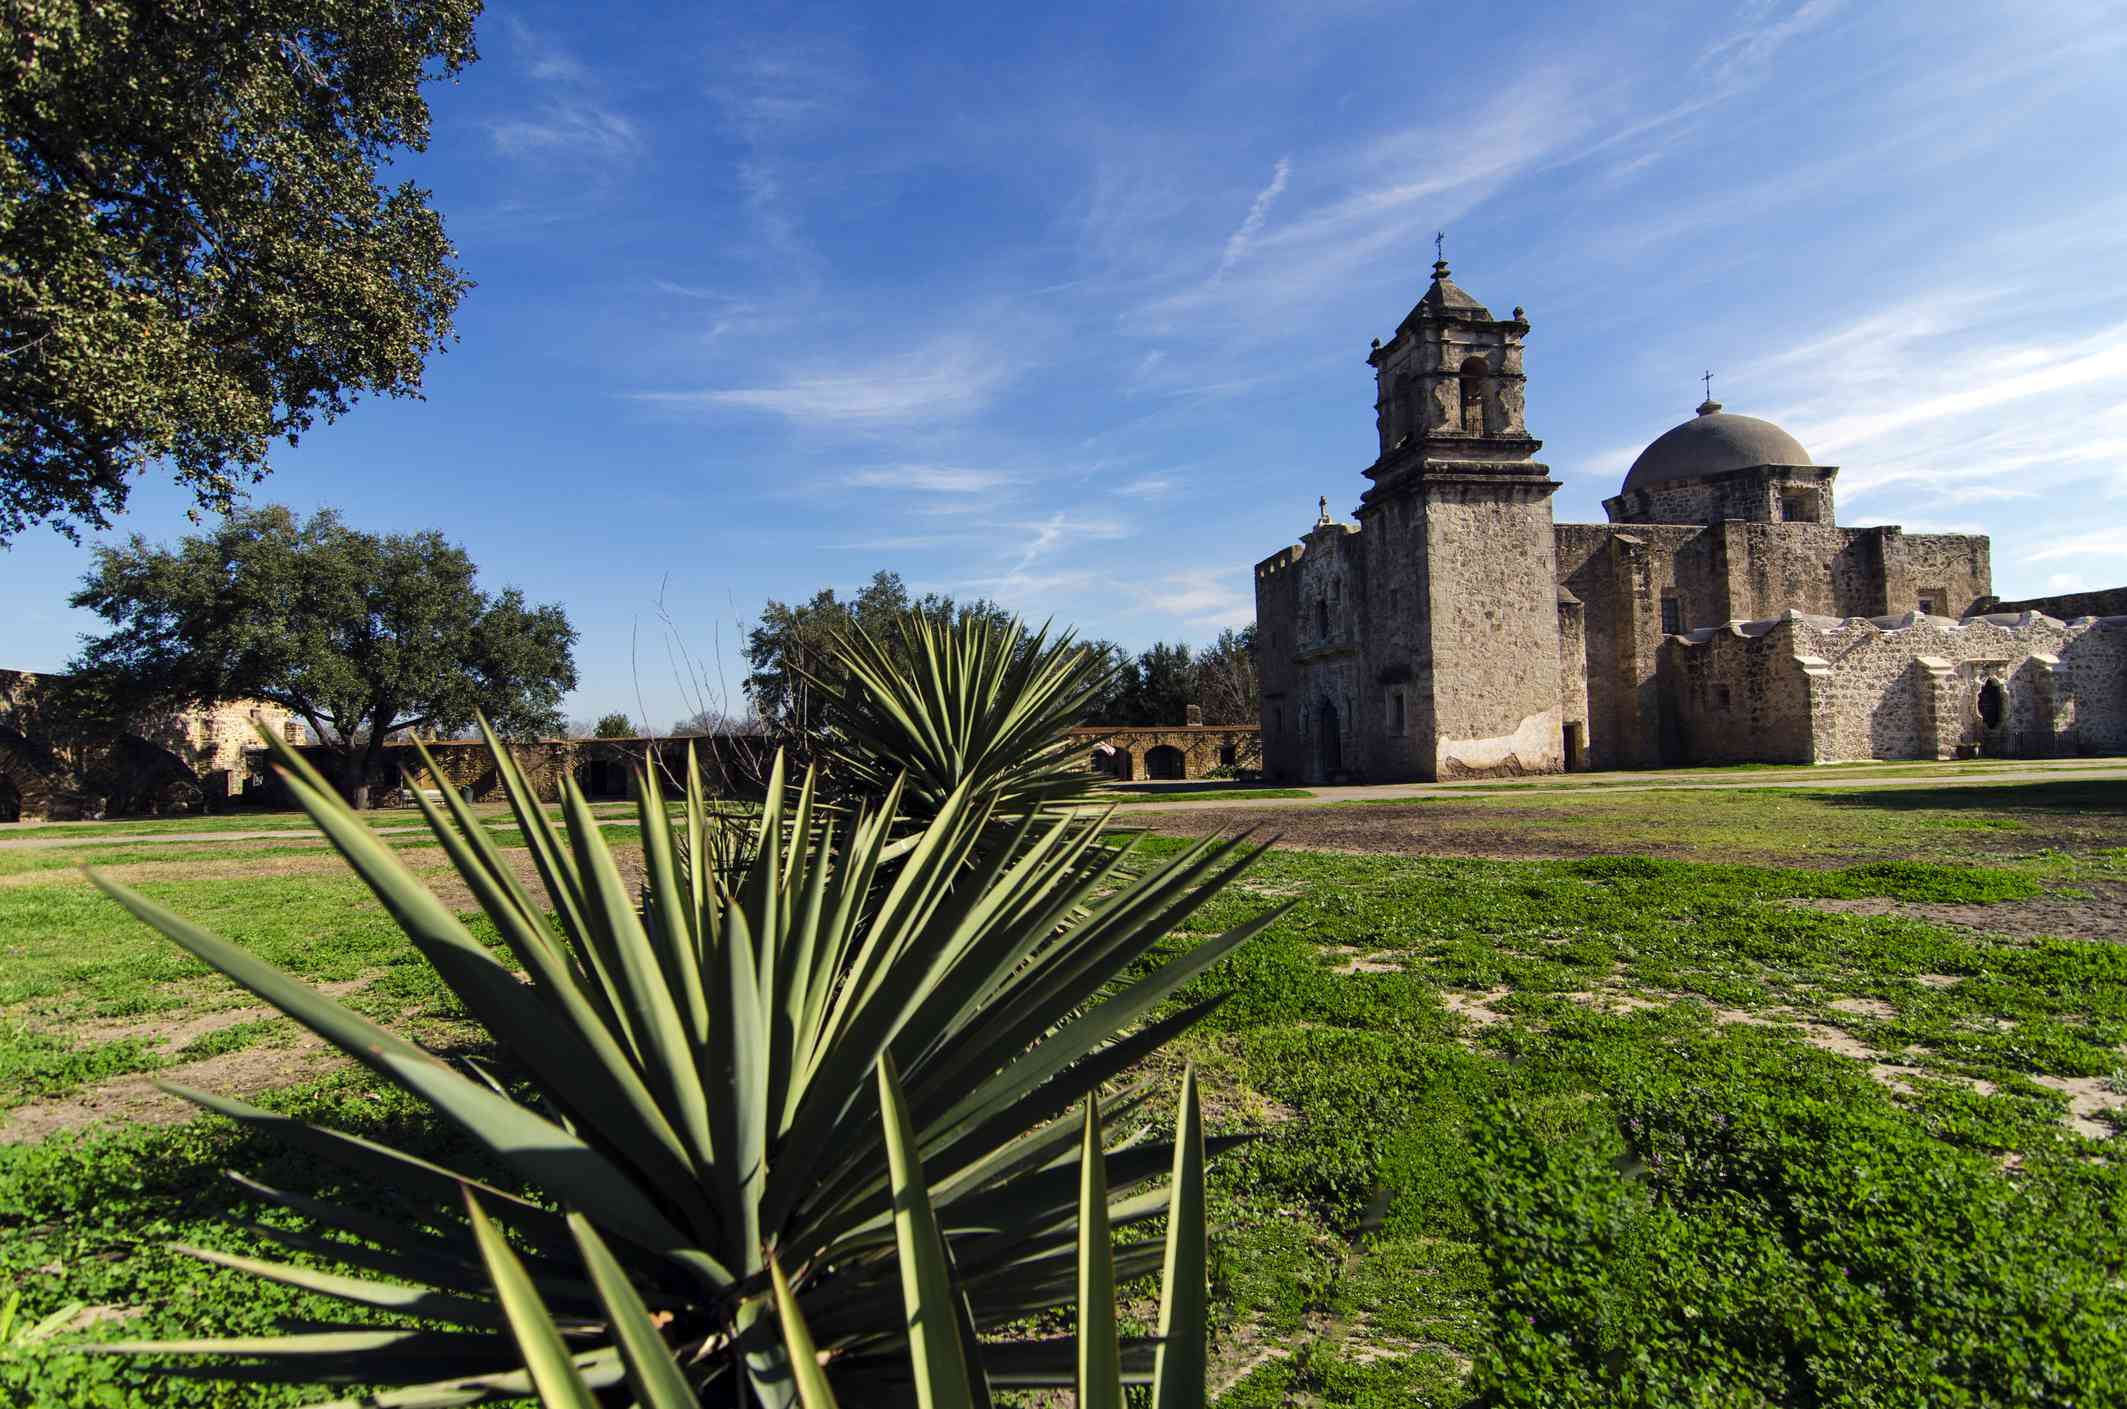 Mission San Jose y San Miguel de Aguayo in the distance below a blue sky with light, white clouds with green grass and low plants in the foreground